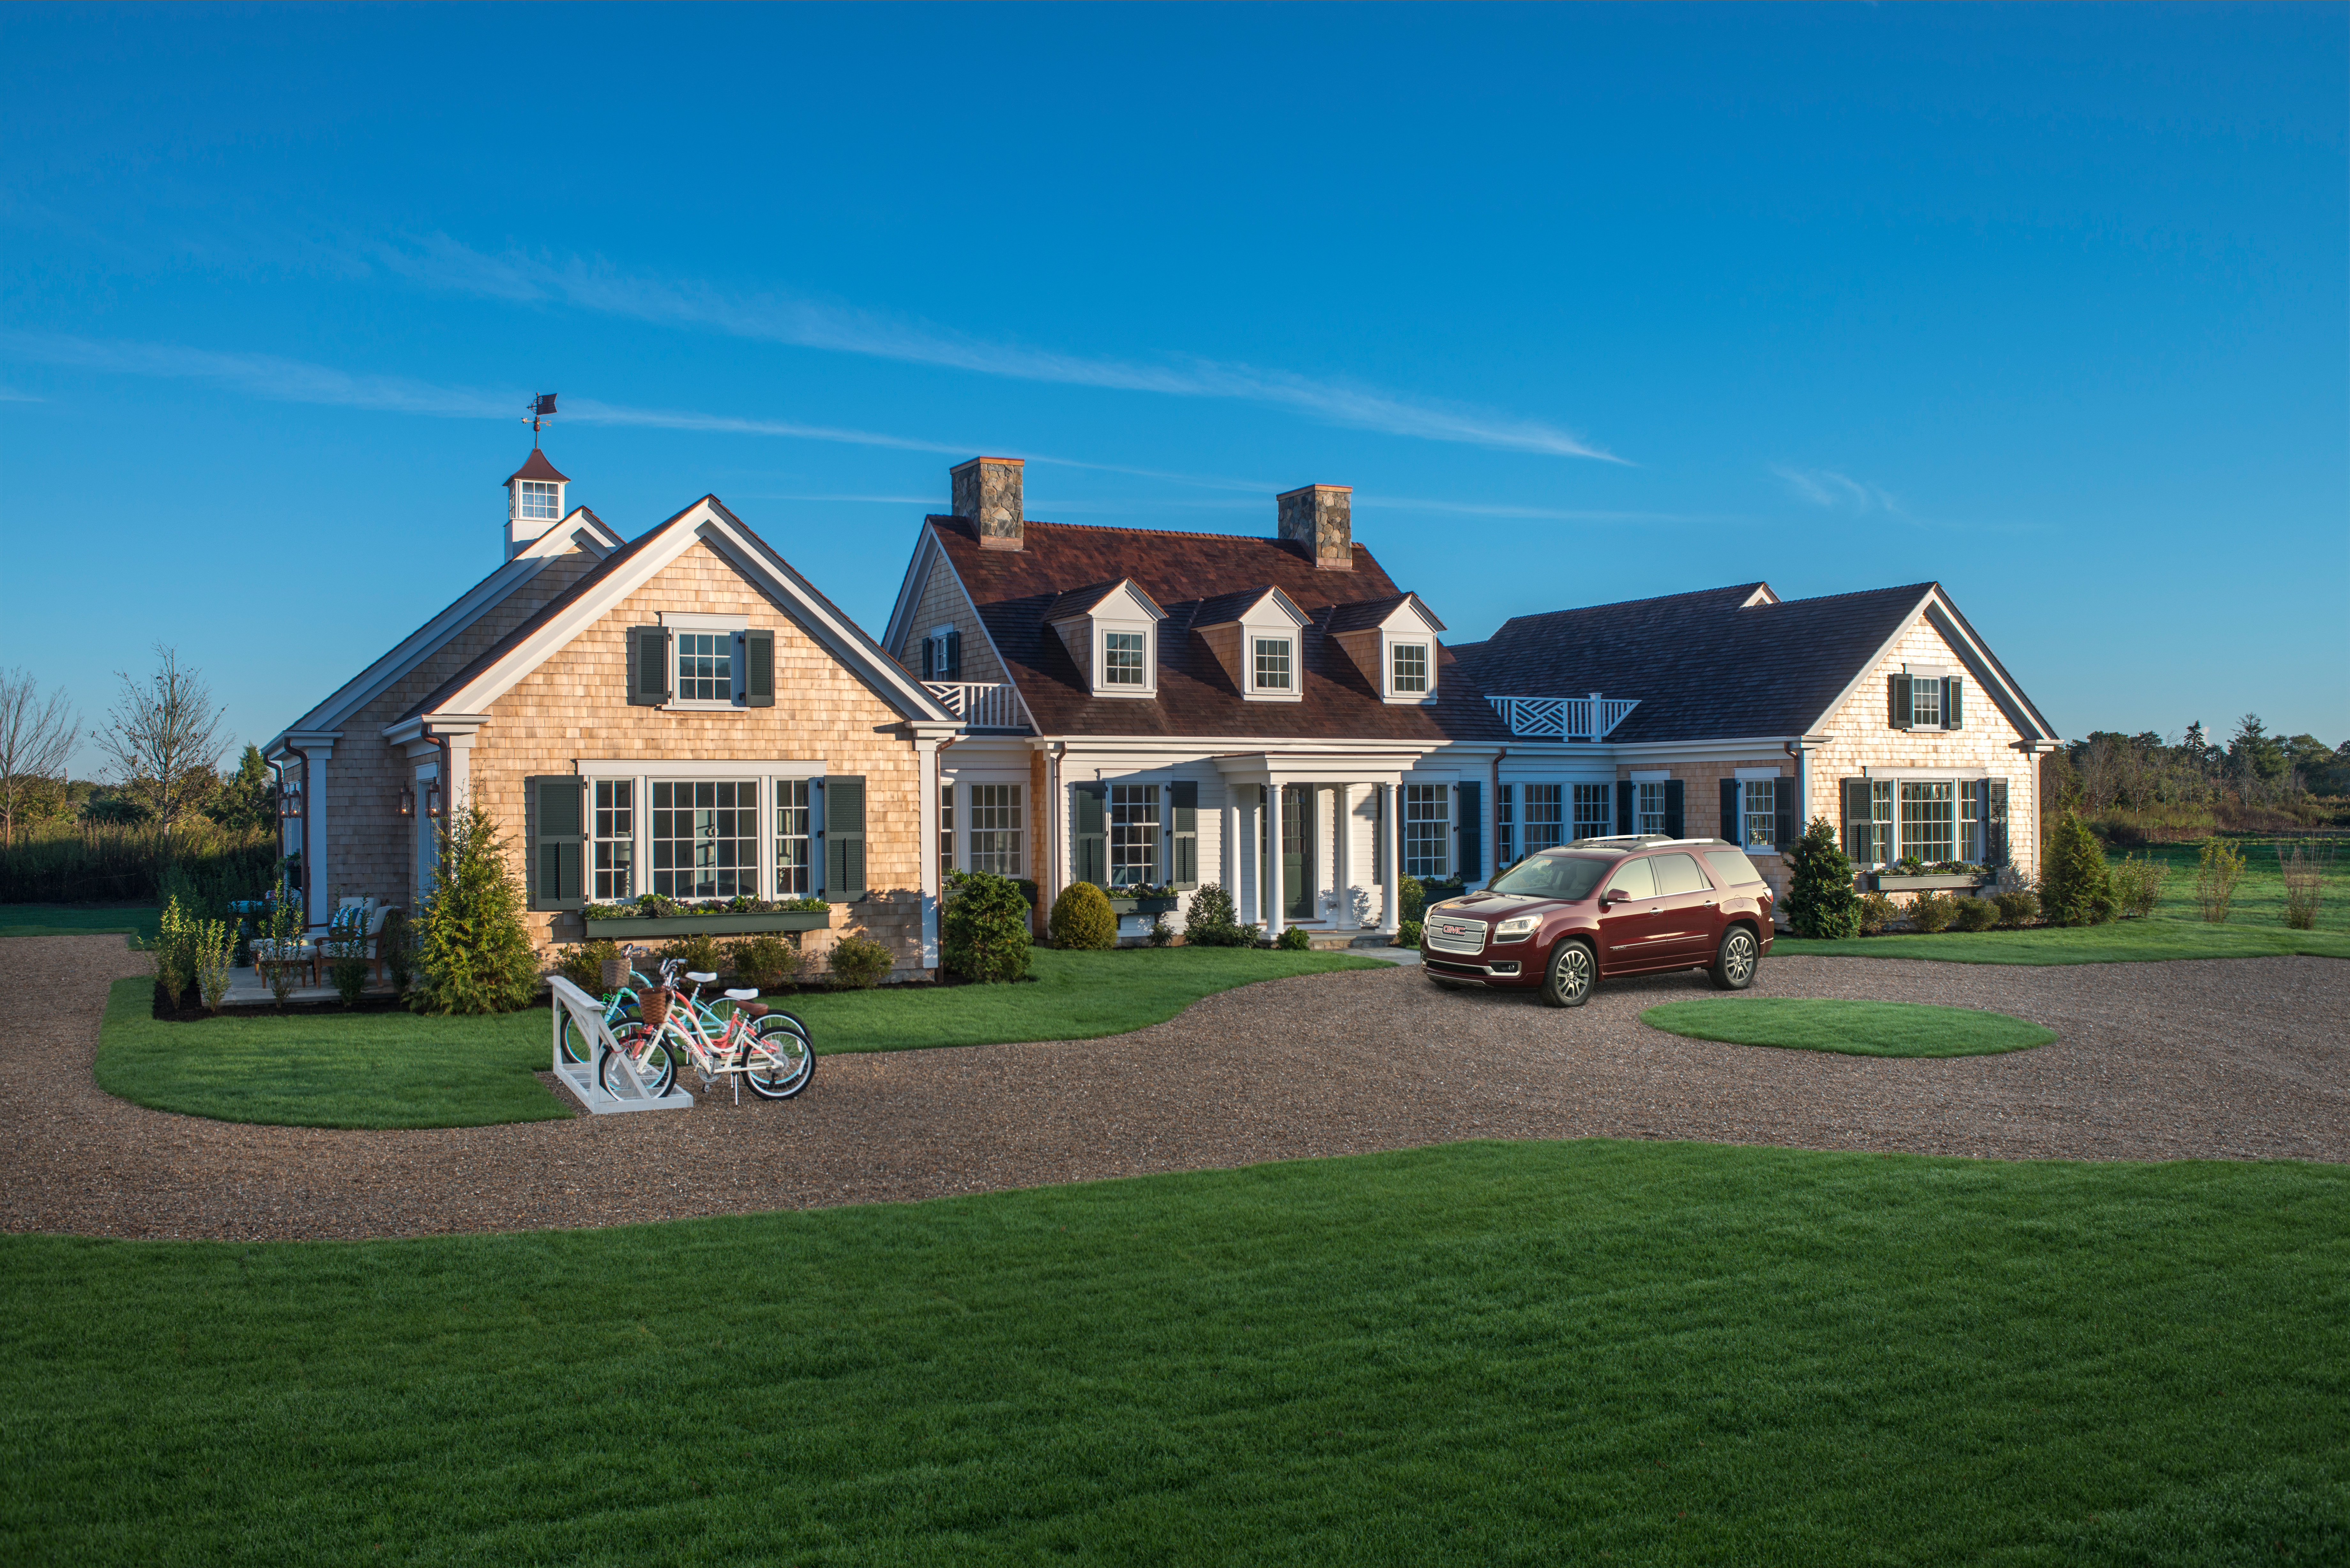 Hgtv Dream Home 2017 Makes Martha S Vineyard The Ultimate Getaway Giveaway Business Wire